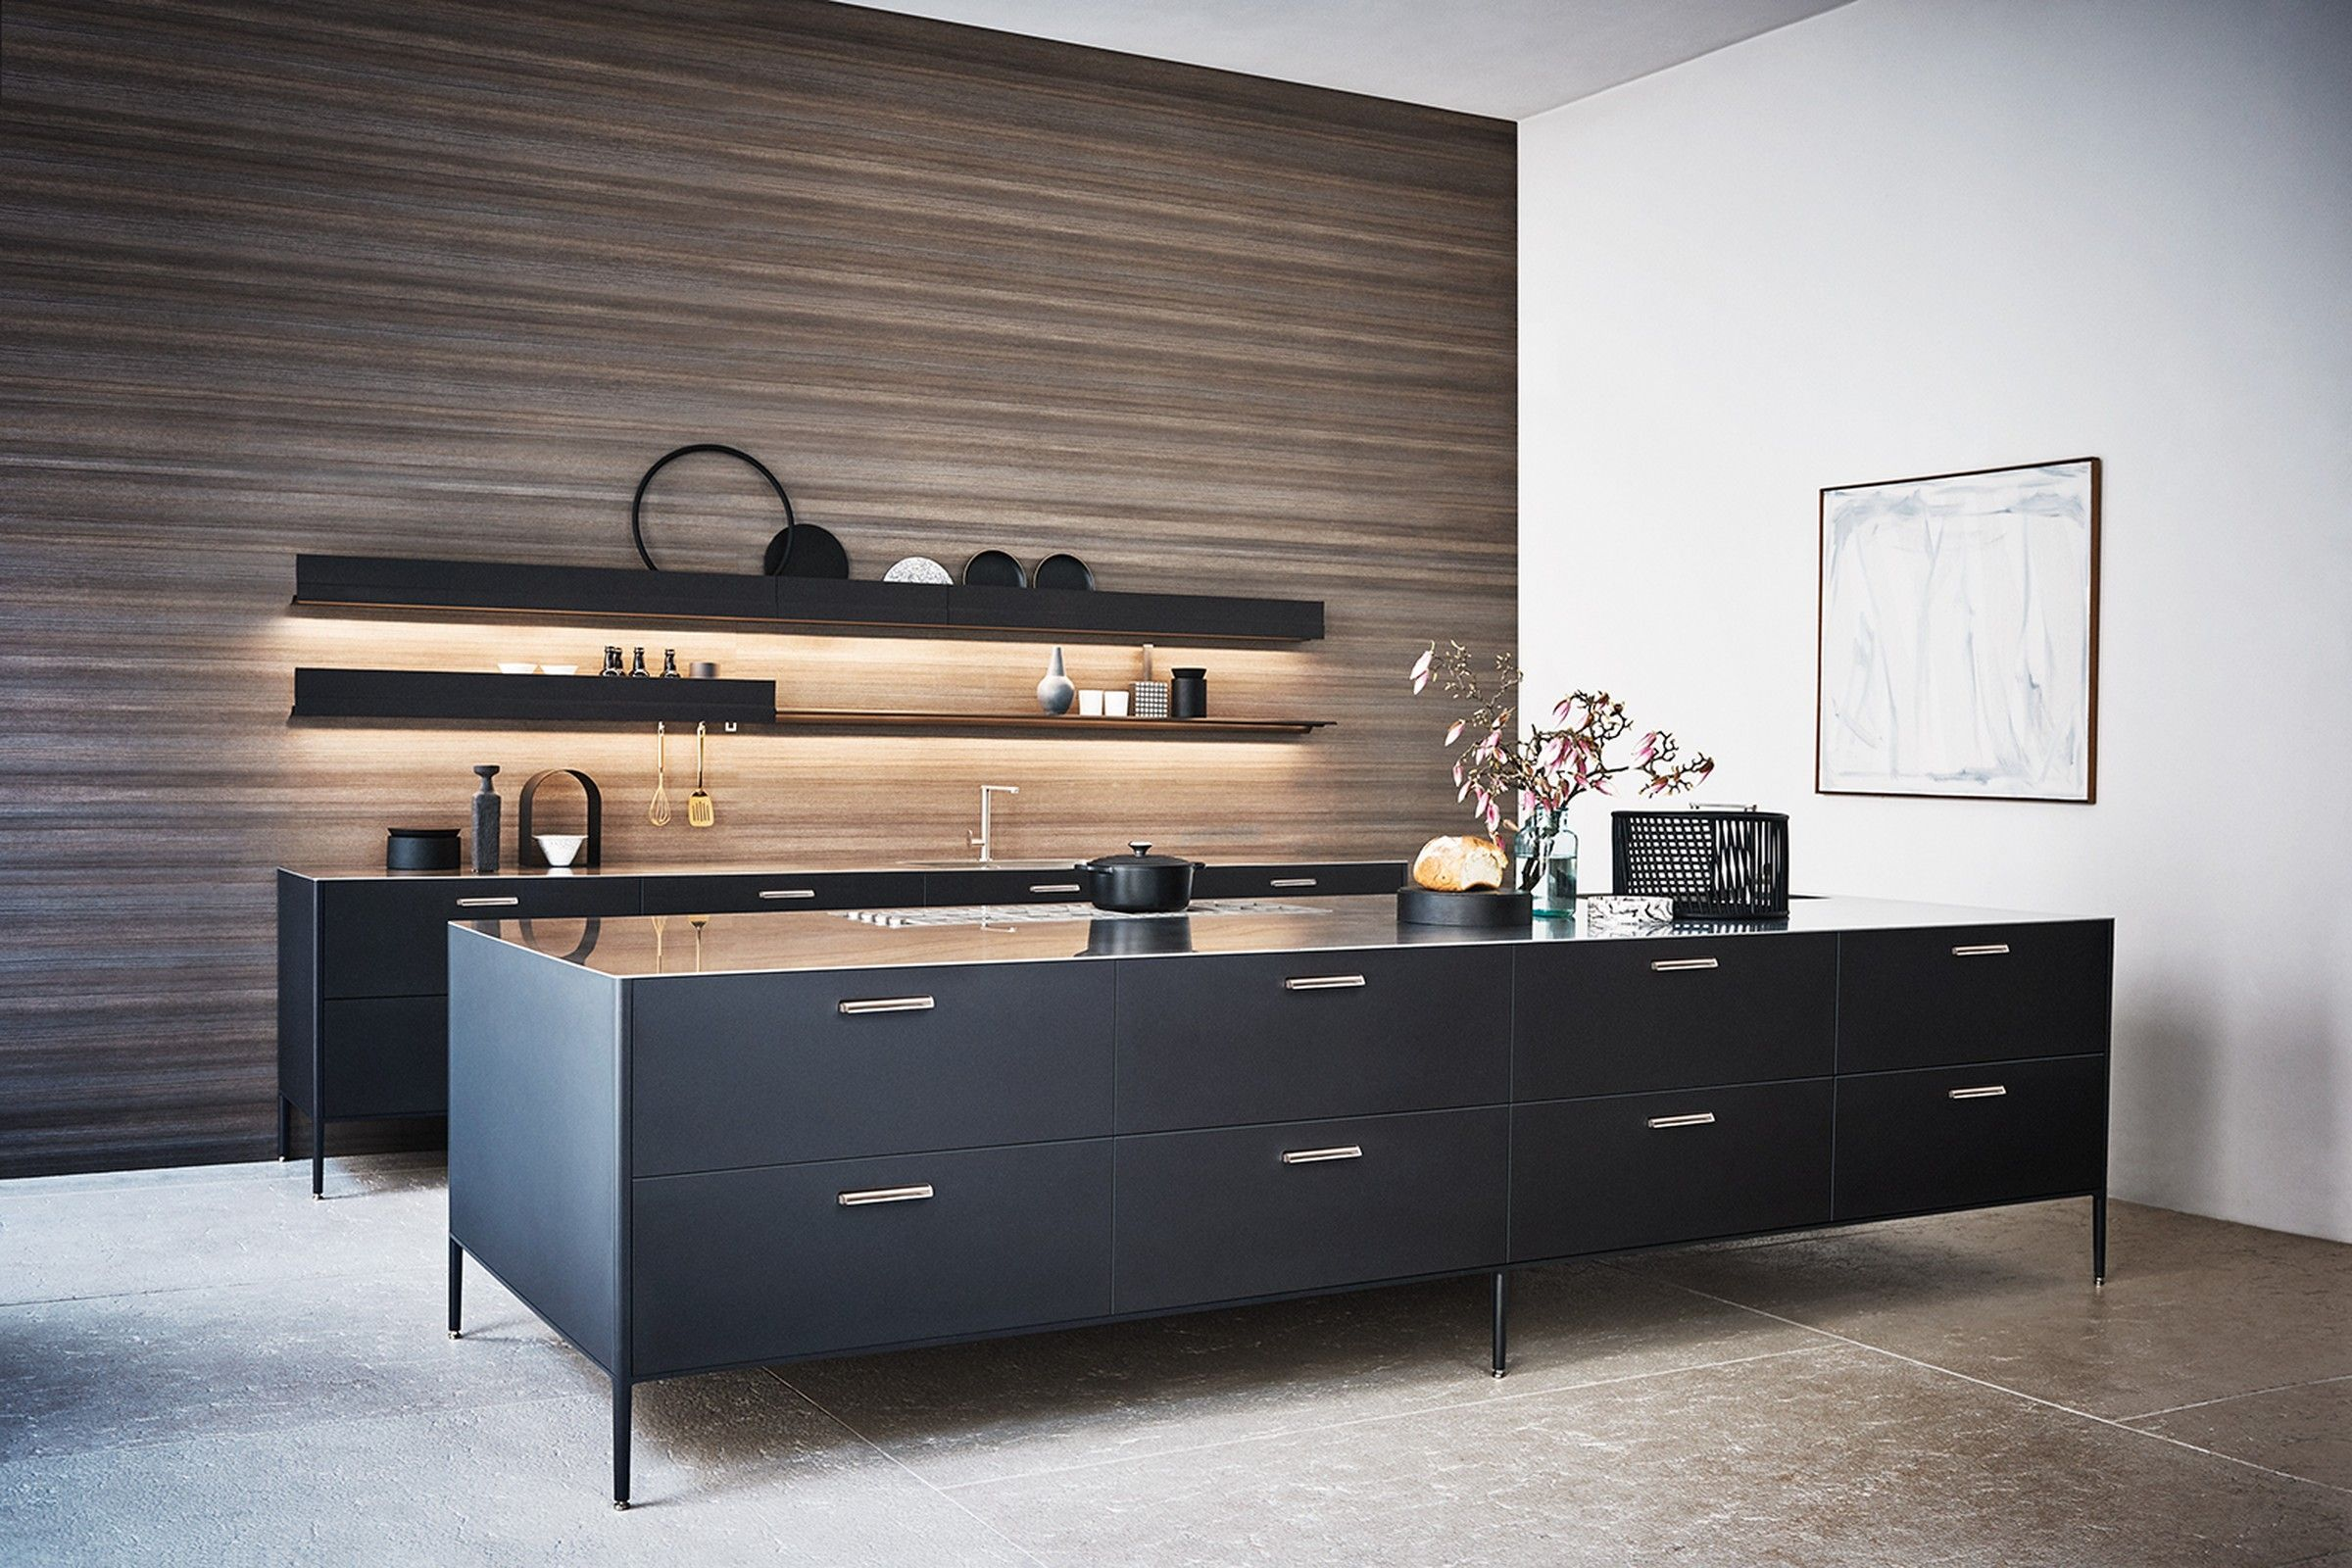 The cesar new york showroom presents a luxury selection of